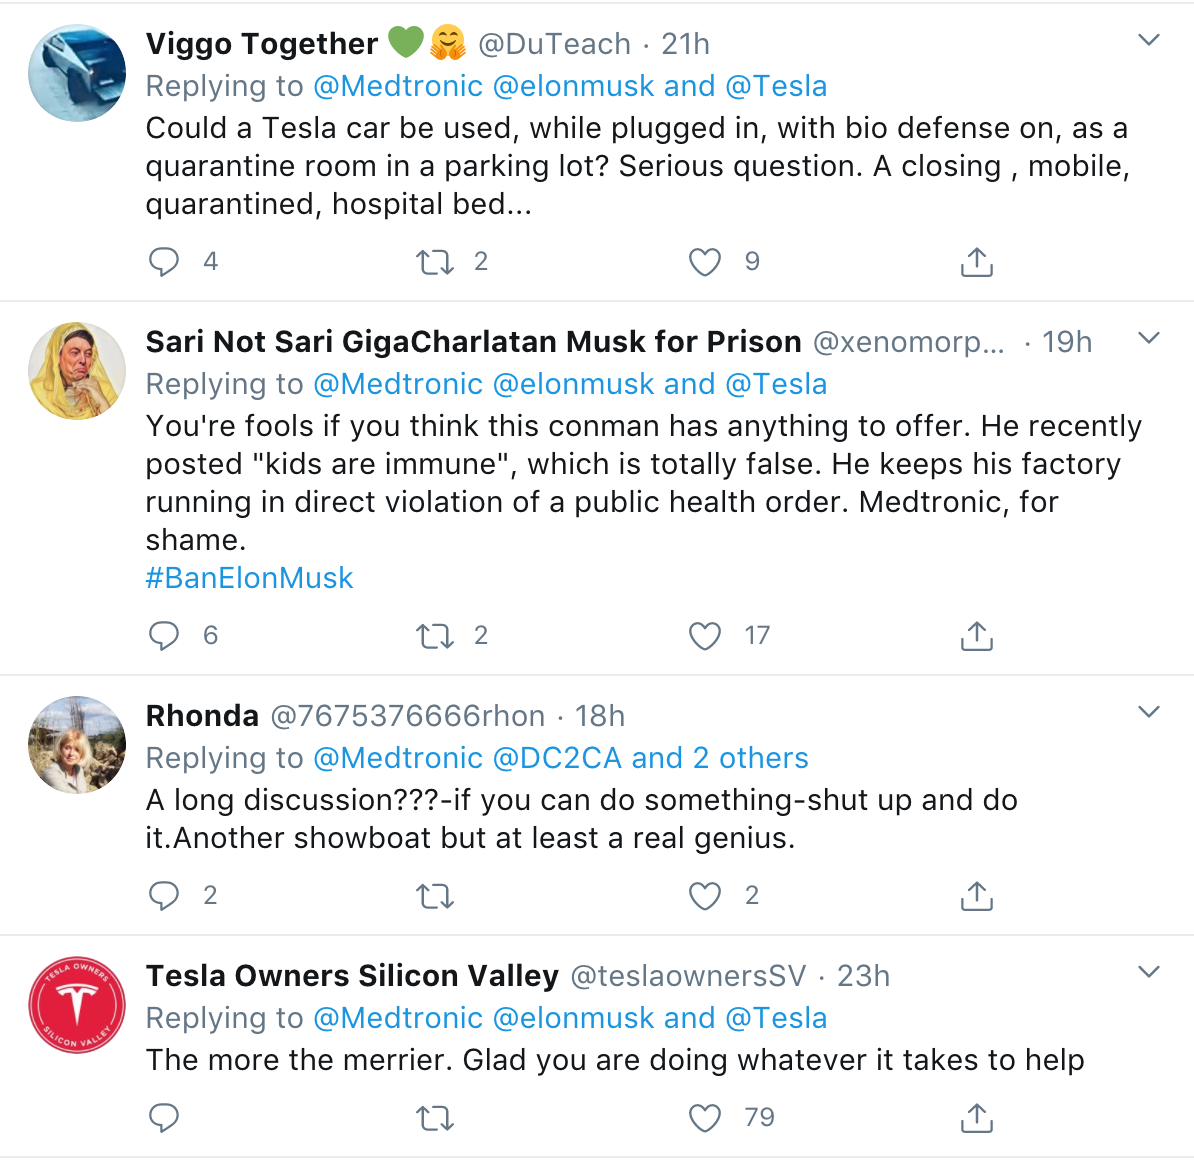 Twitter discussion of Musk and Medtronic working on ventilator shortage